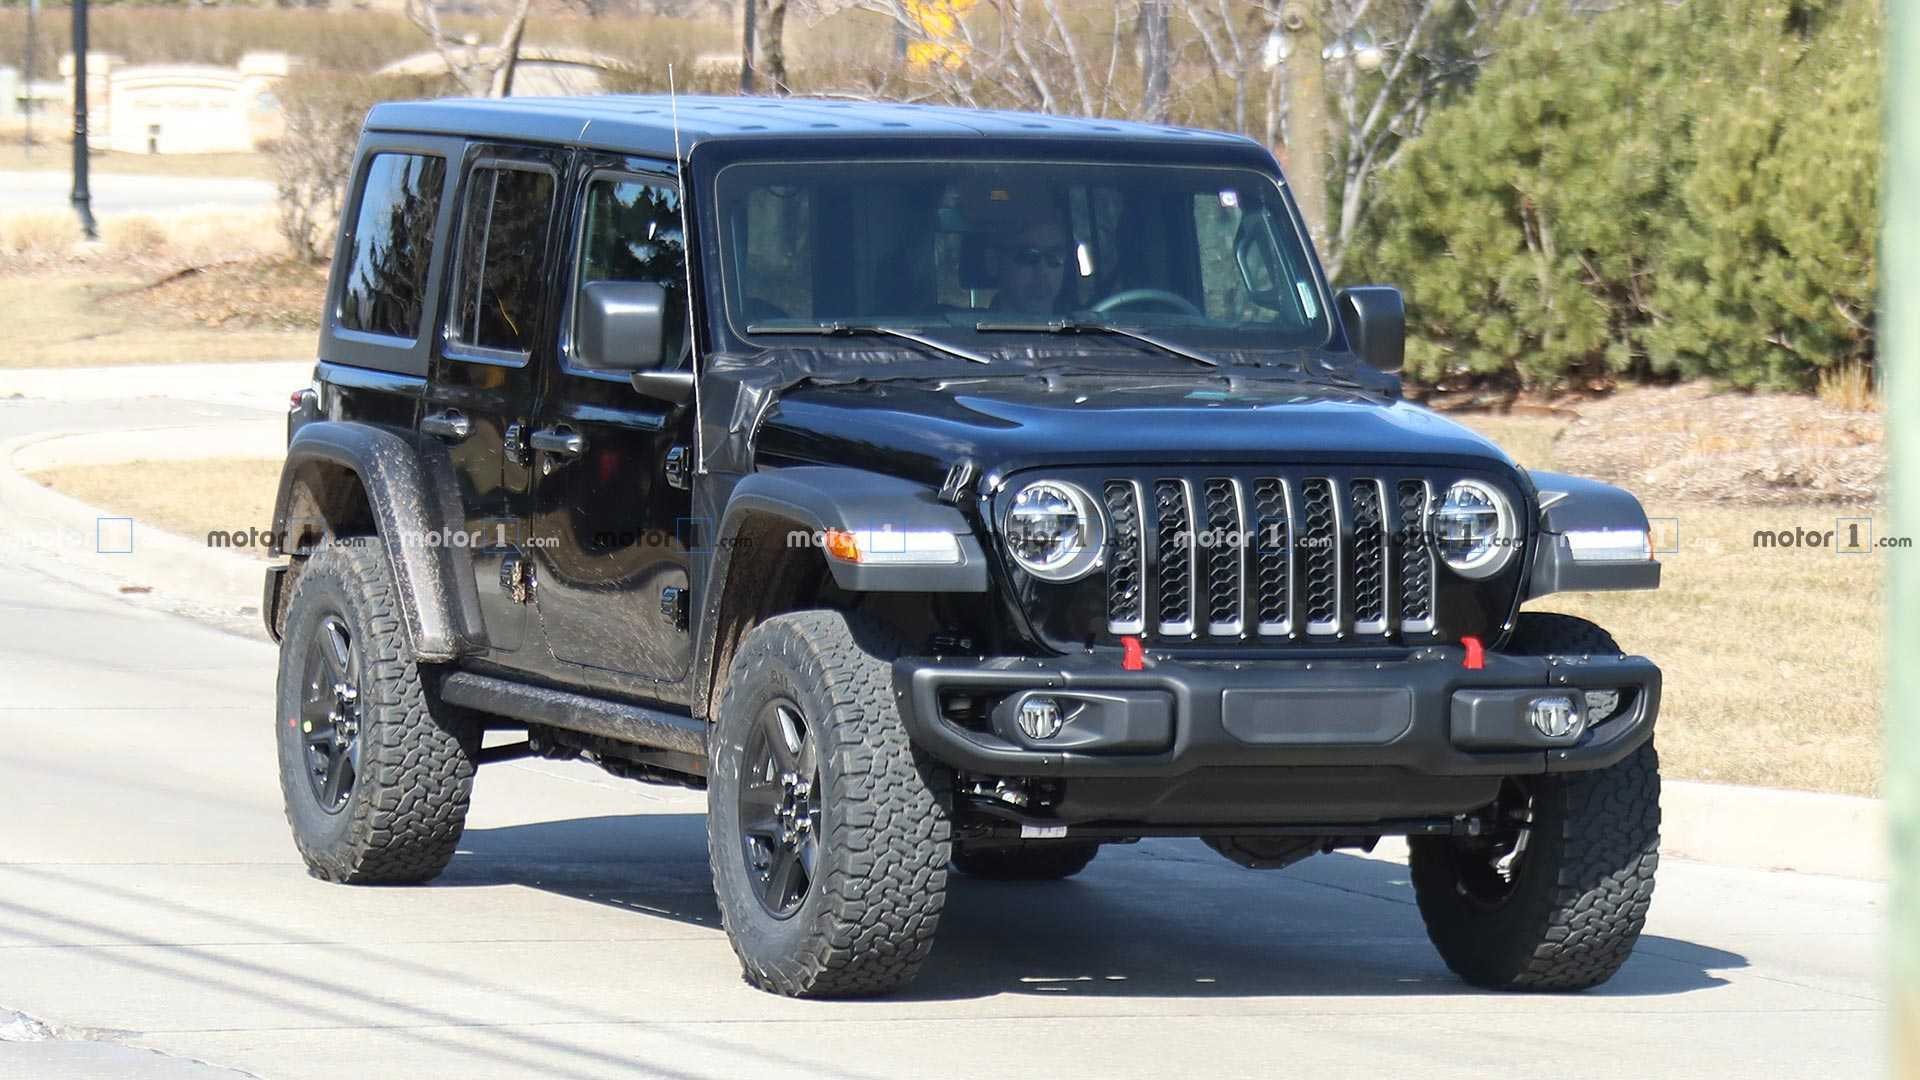 2020 Jeep Wrangler News Diesel Phev Price >> Jeep Wrangler Plug In Hybrid Coming In 2020